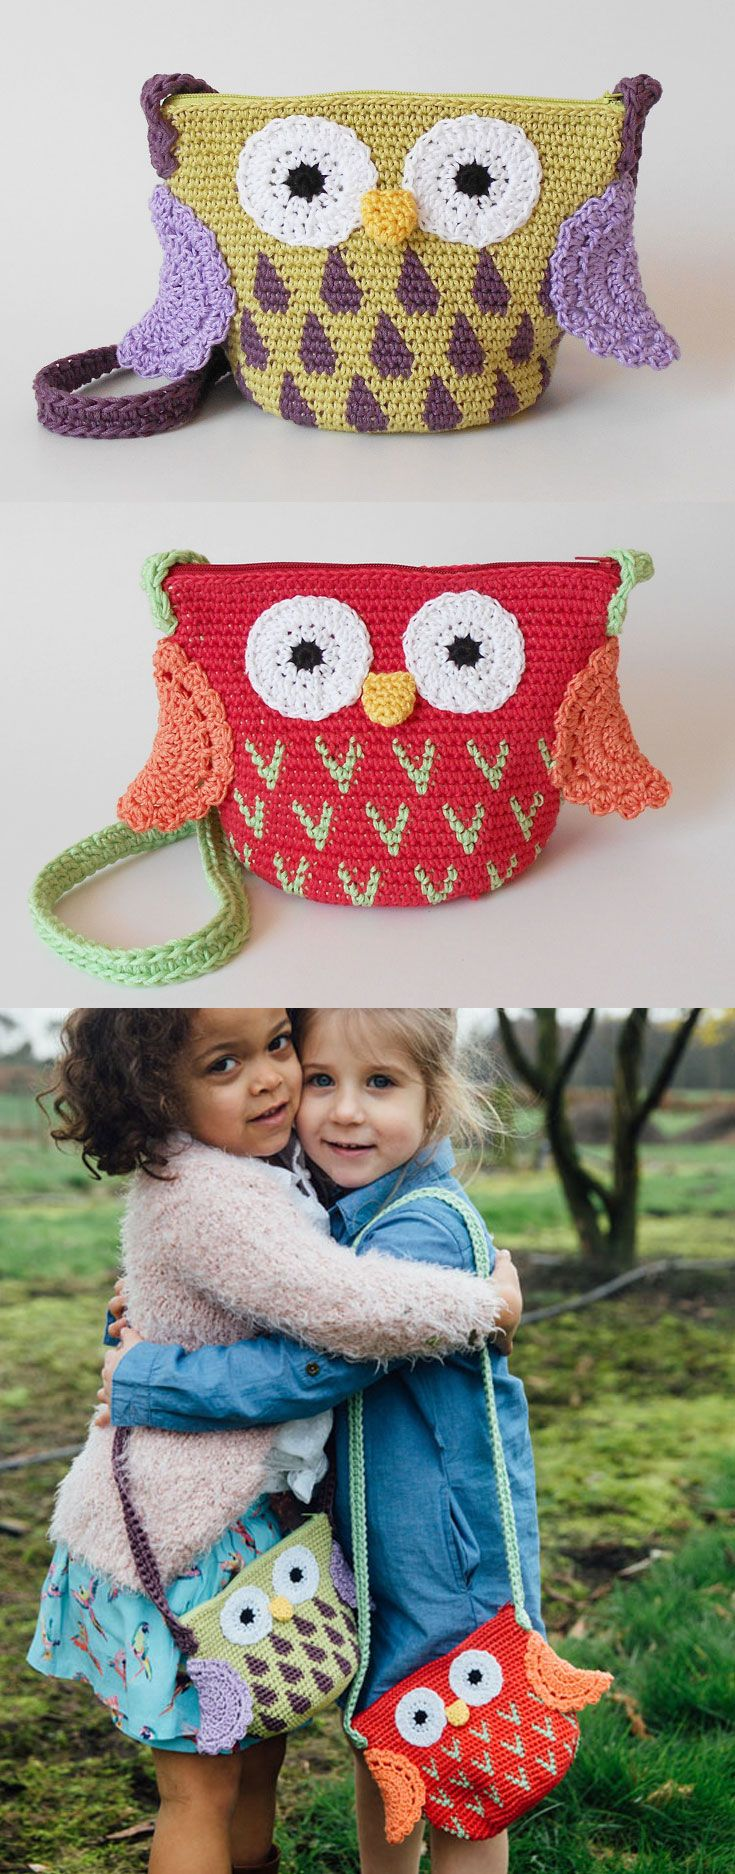 Owl bags with colorful details, the perfect gift for siblings, to share lovely and fun moments. A child's life is filled to the brim with different activities and outings, and what better way to keep it all organized than with cute and soft amigurumi bags?